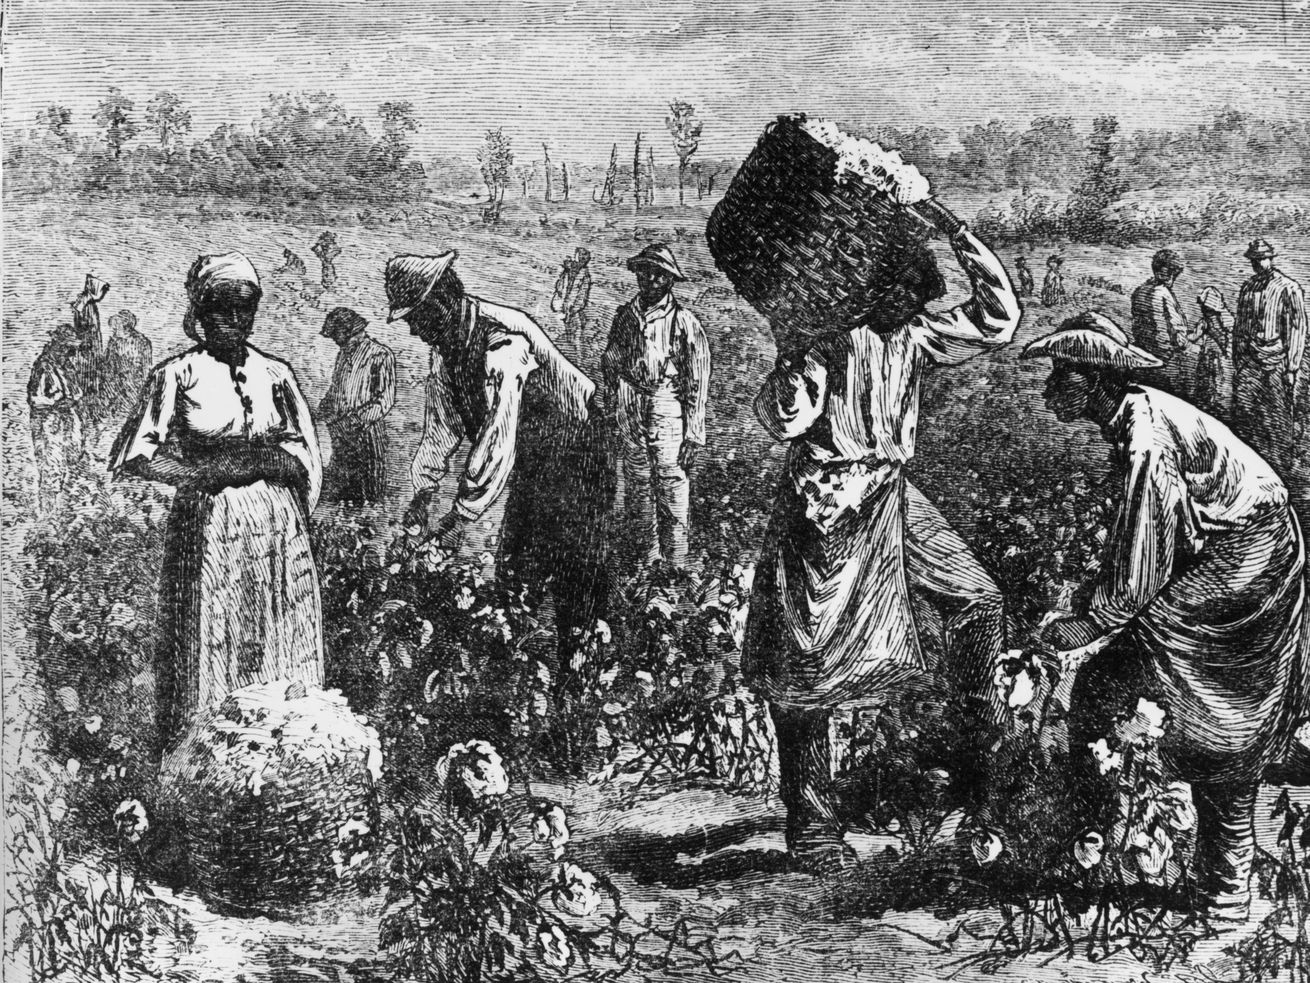 An etching of slaves picking cotton in a plantation field.